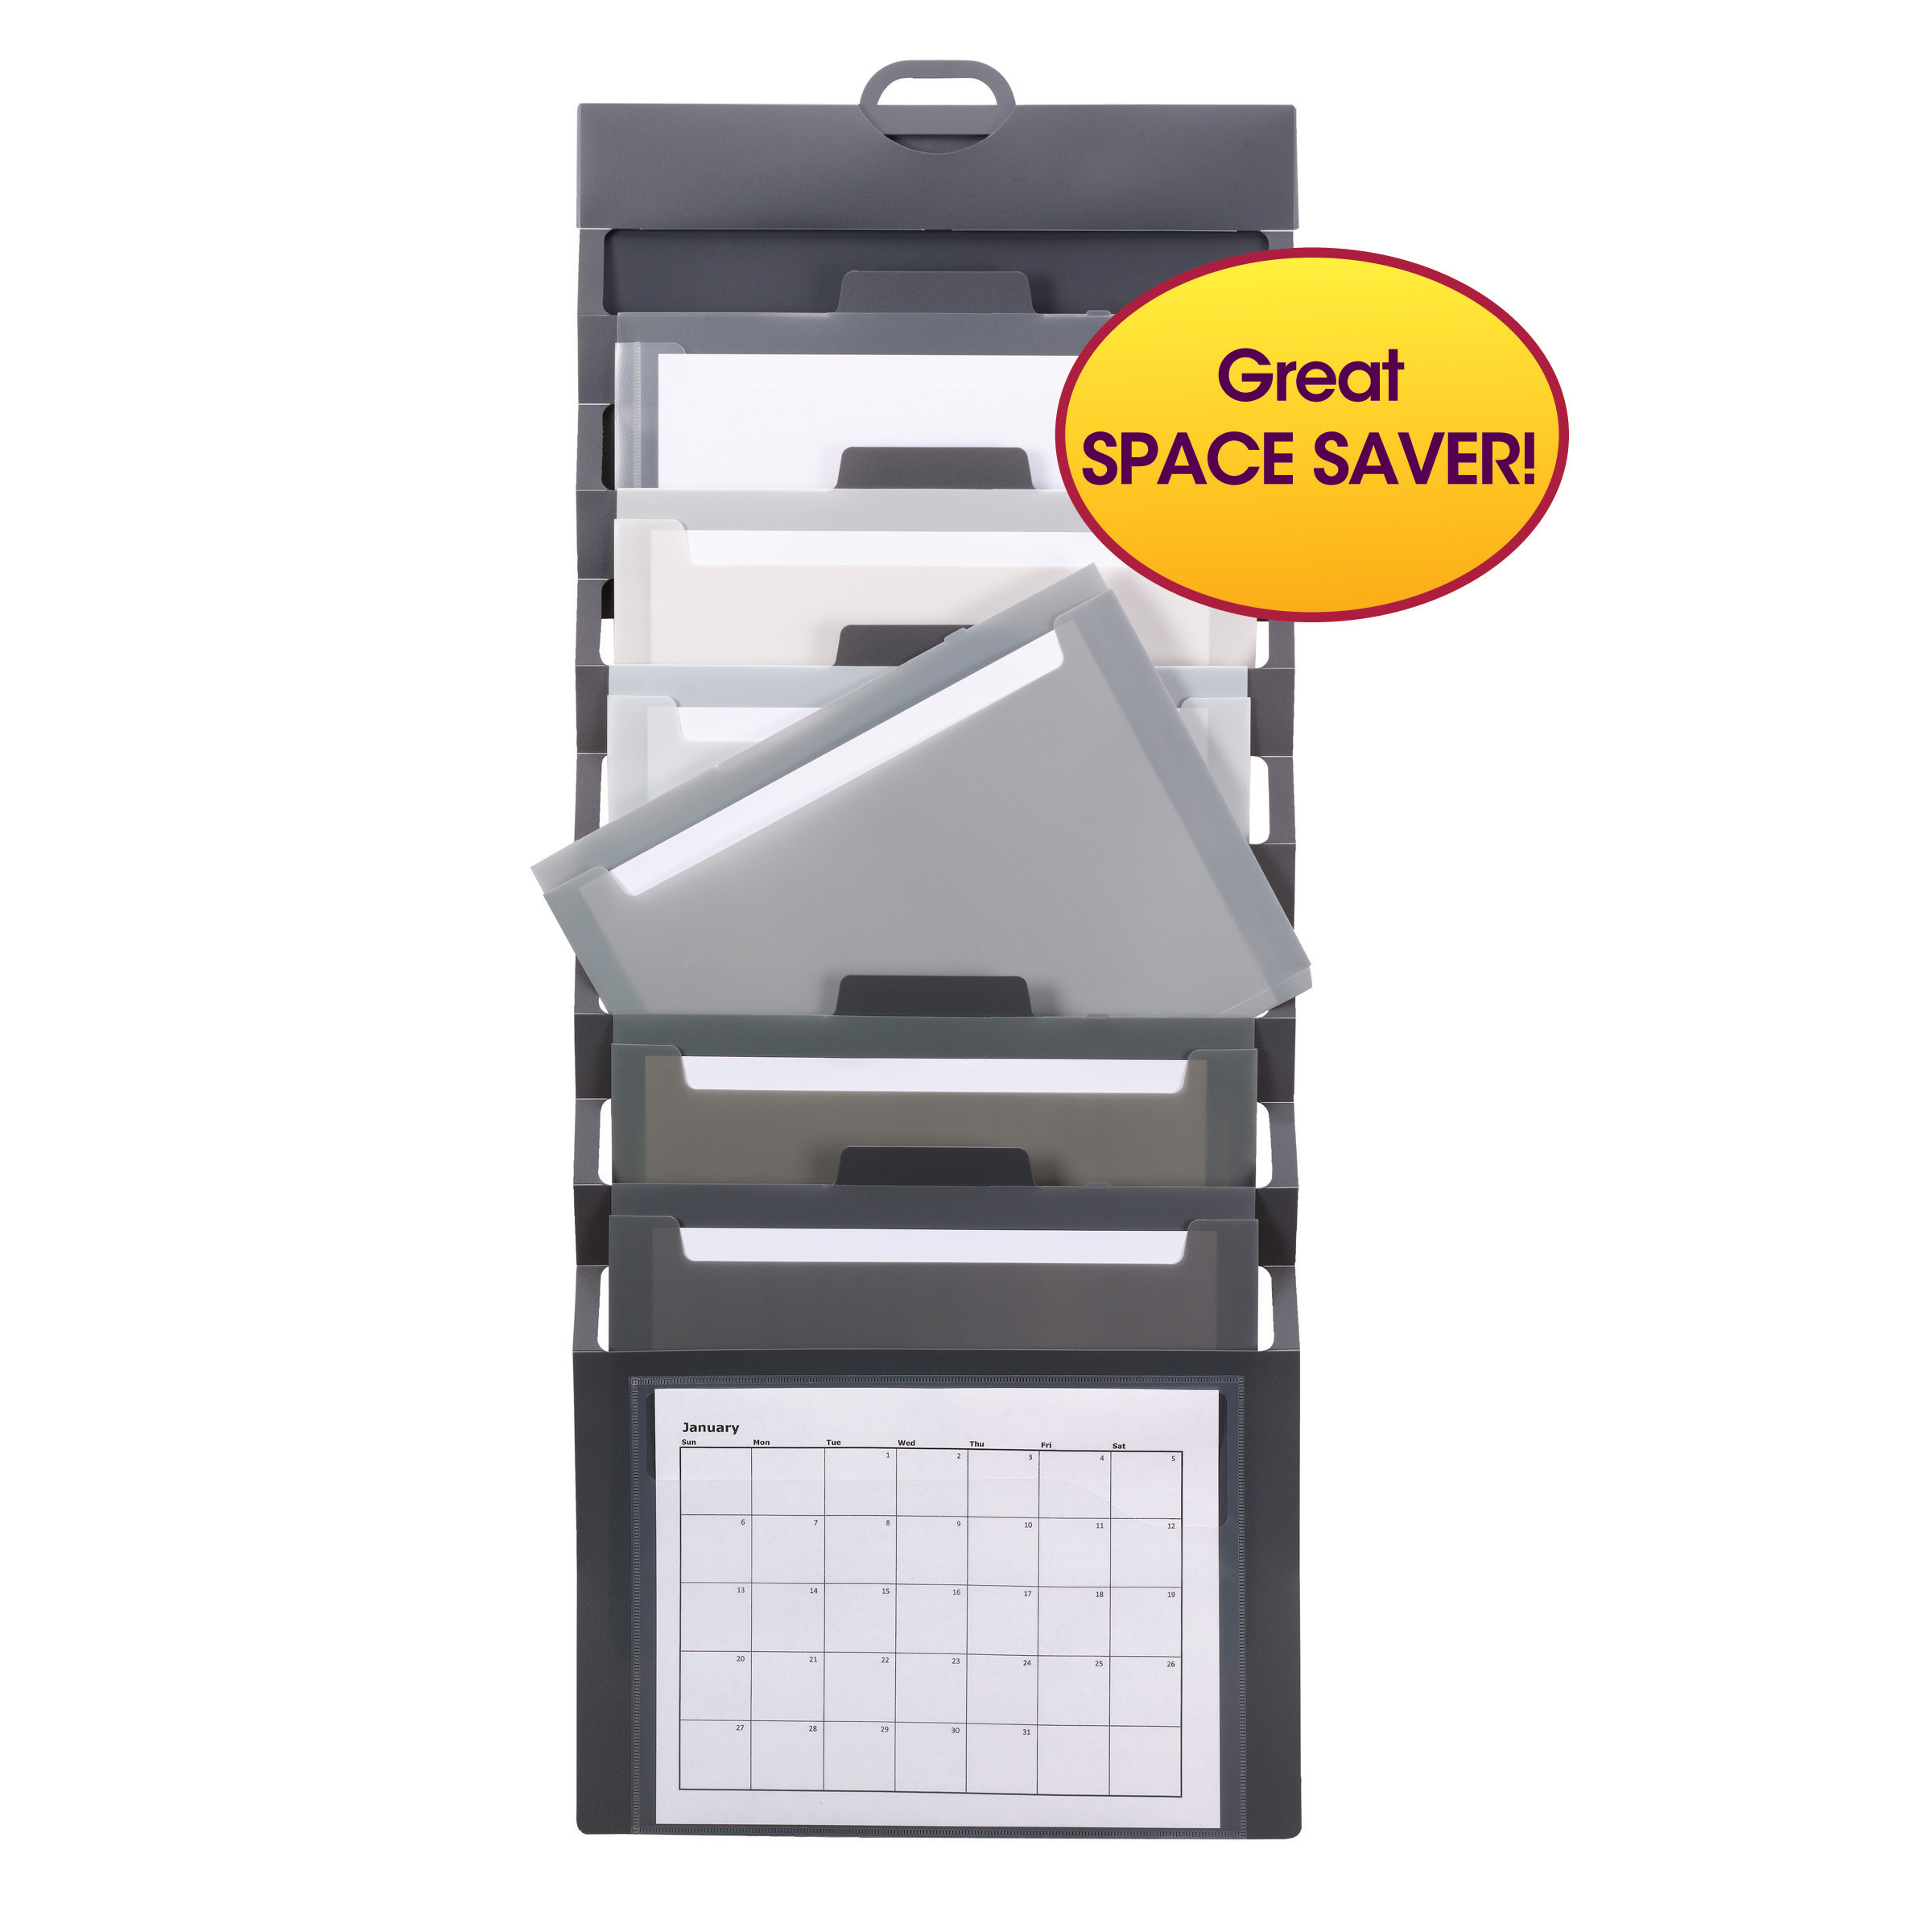 Smead Cascading Wall Organizer 6 Pockets Letter Size Gray/Neutral (92061  sc 1 st  Walmart & Wall Files